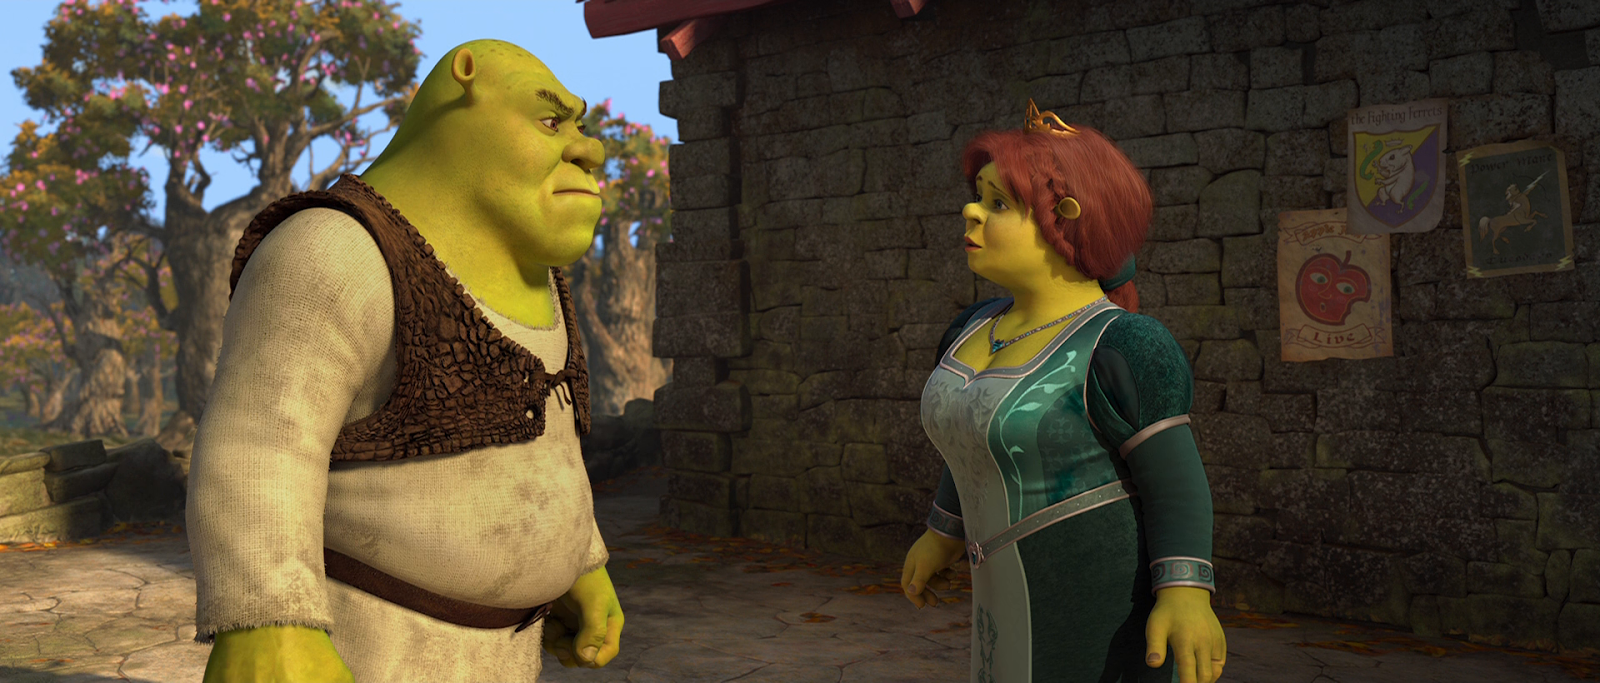 Shrek Para Siempre (2010) BRRip 1080p Latino - Ingles captura 2